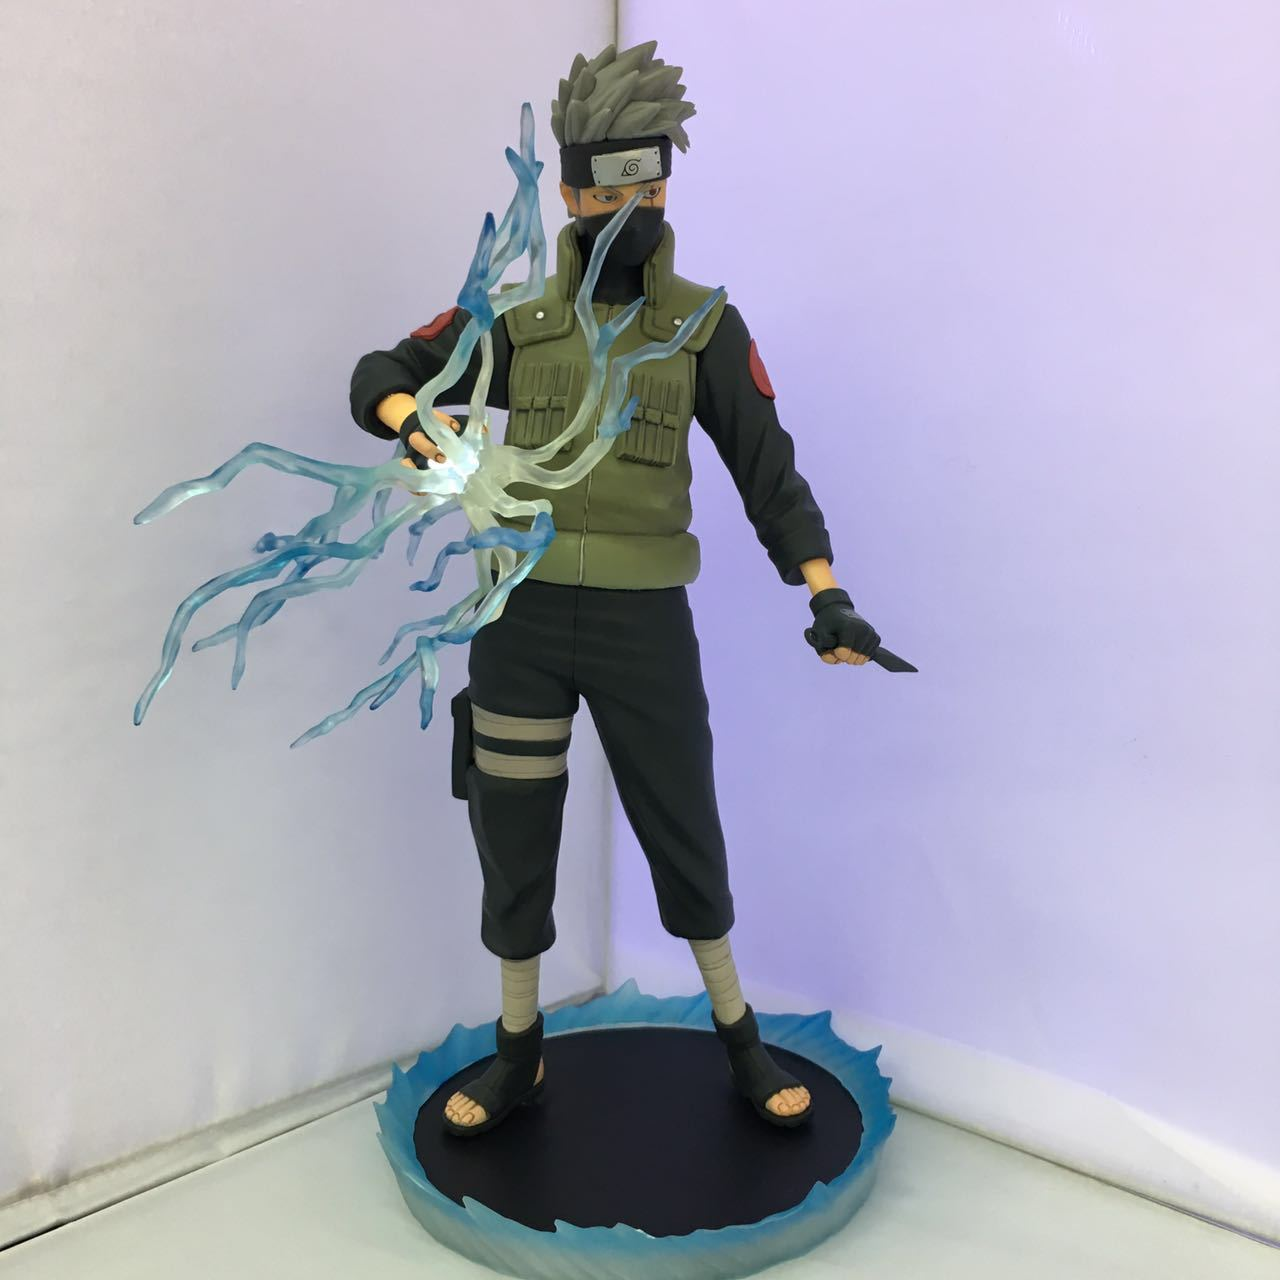 NEW 1pcs 30CM pvc anime figure Naruto big size Hatake Kakashi action figure collectible model toys brinquedos anime naruto brinquedos action